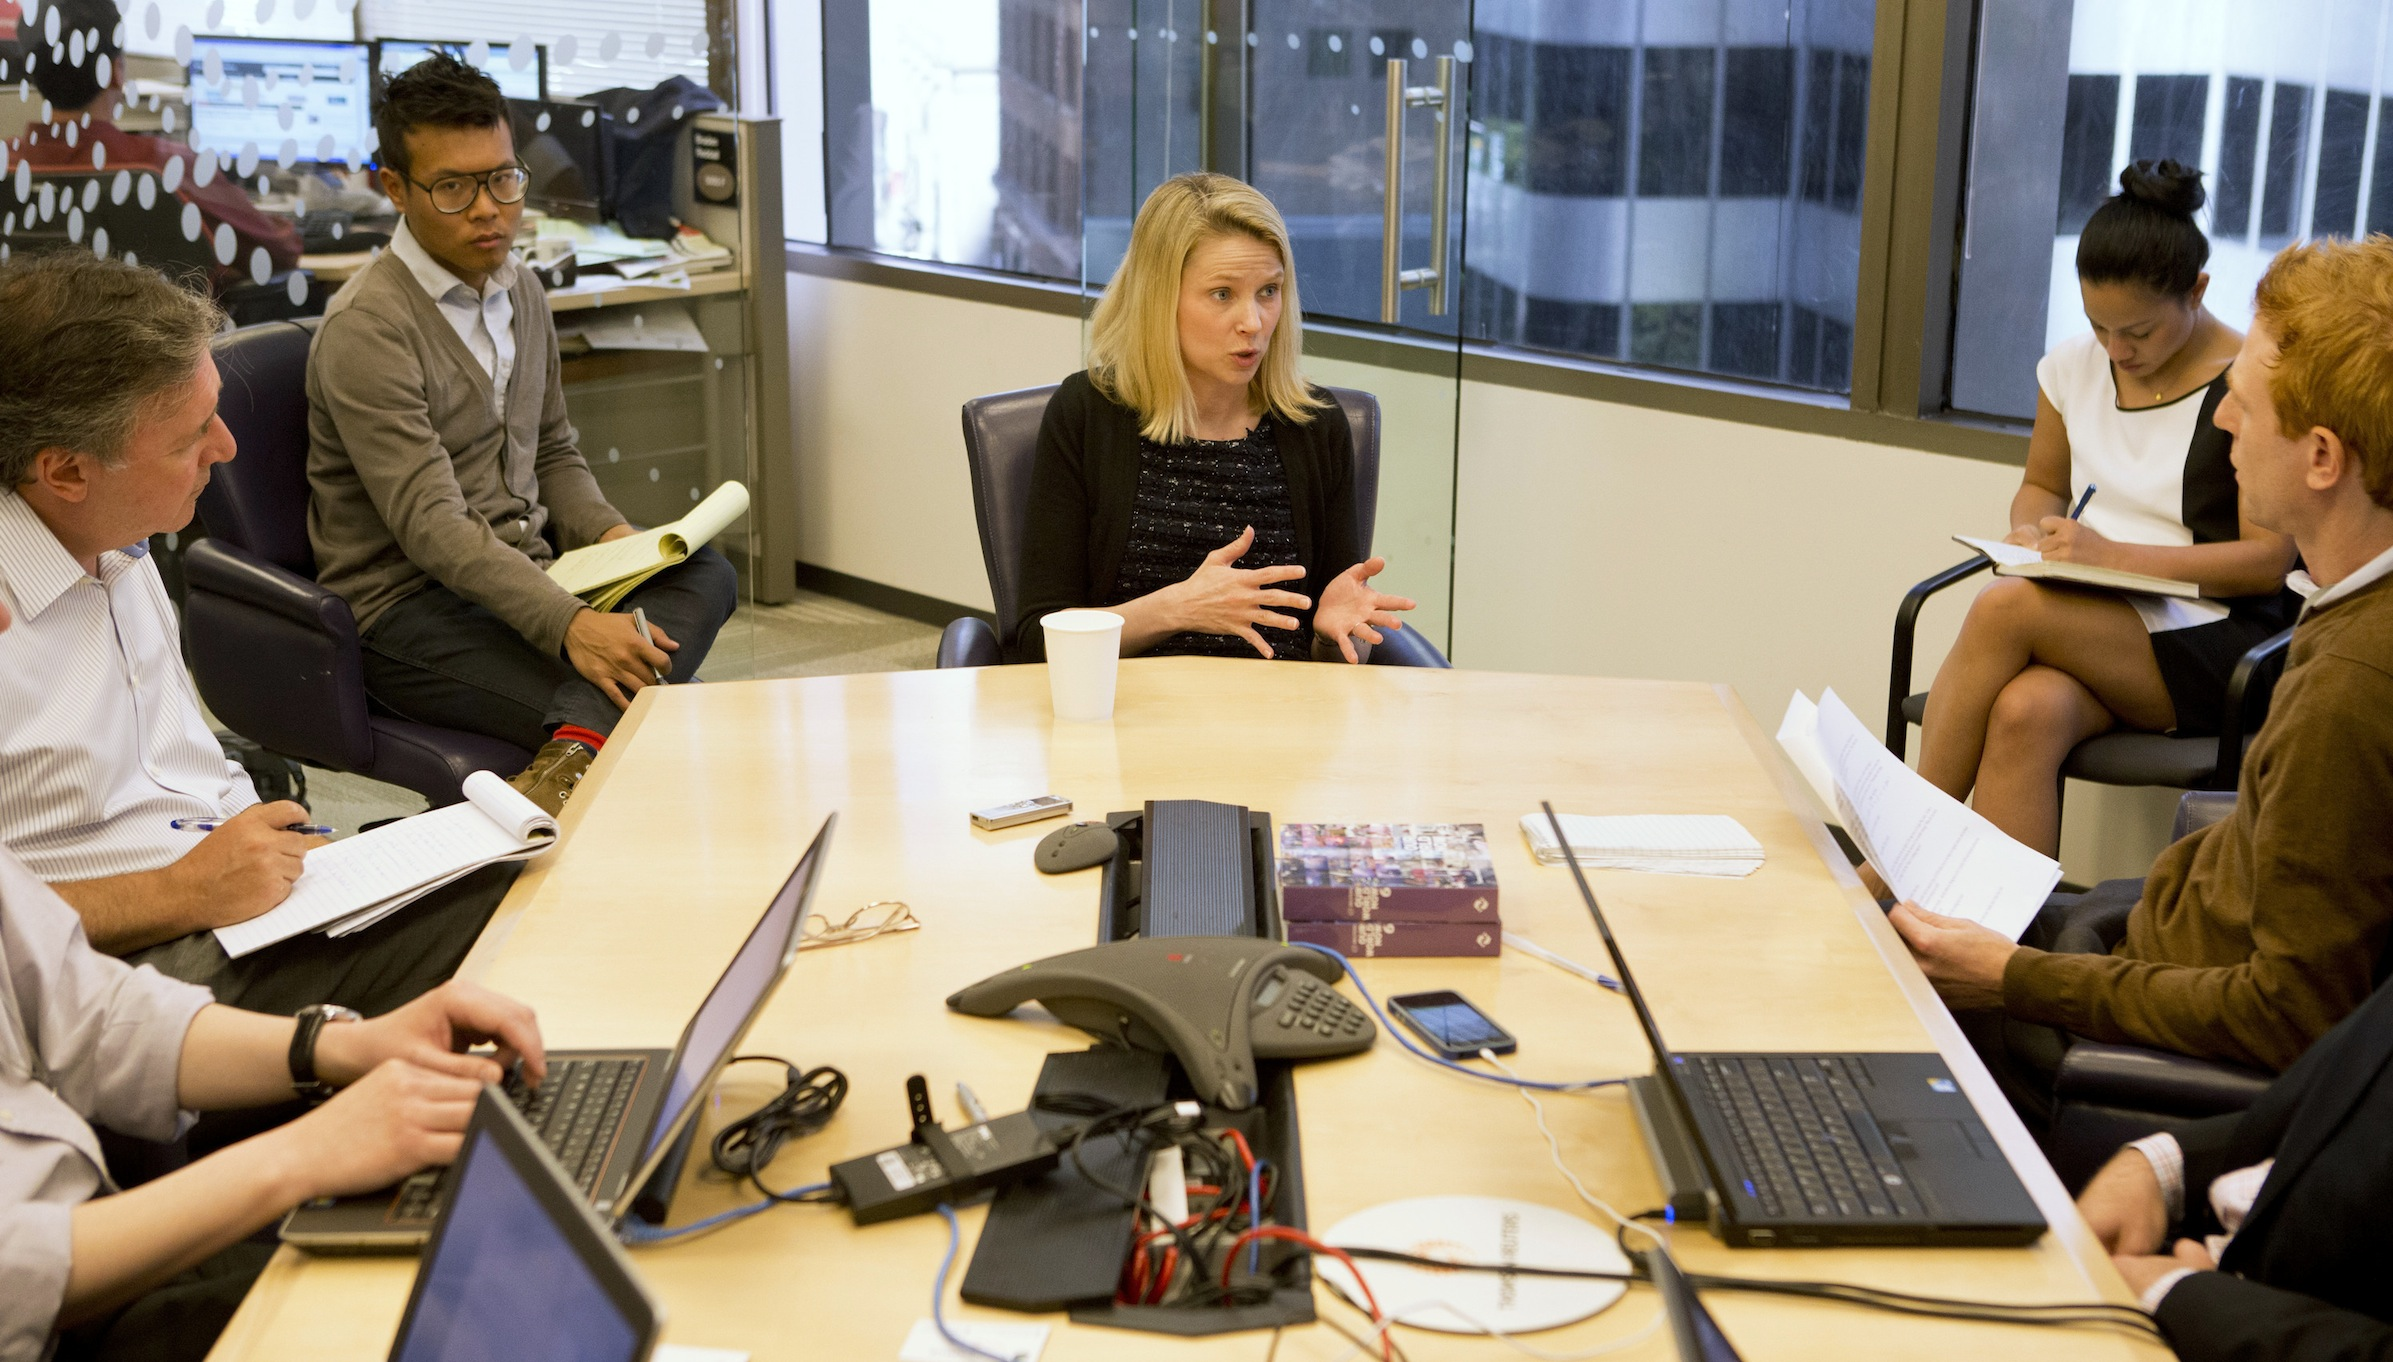 Marissa Mayer (C), President and CEO of Yahoo, answers questions during the Reuters Global Technology Summit in the Thomson Reuters offices in San Francisco, California, June 20, 2013. REUTERS/Beck Diefenbach (UNITED STATES - Tags: BUSINESS SCIENCE TECHNOLOGY) - RTX10V8R